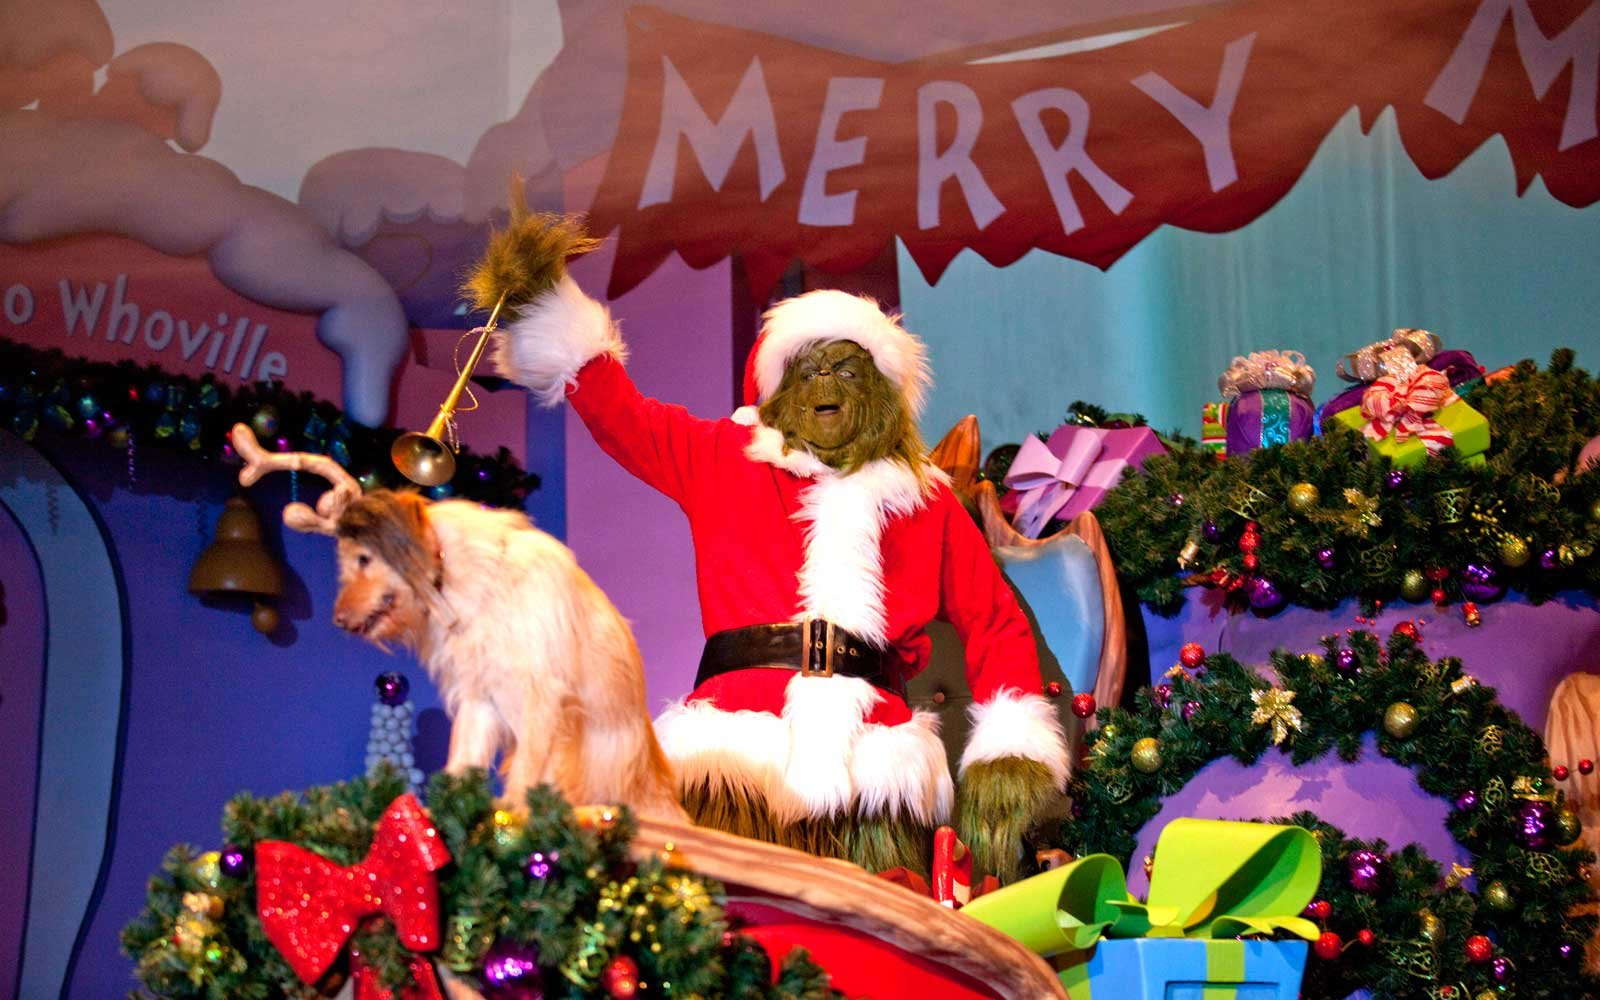 lead-grinchmas-universal-orlando-MOVIEHOLIDAY1217.jpg